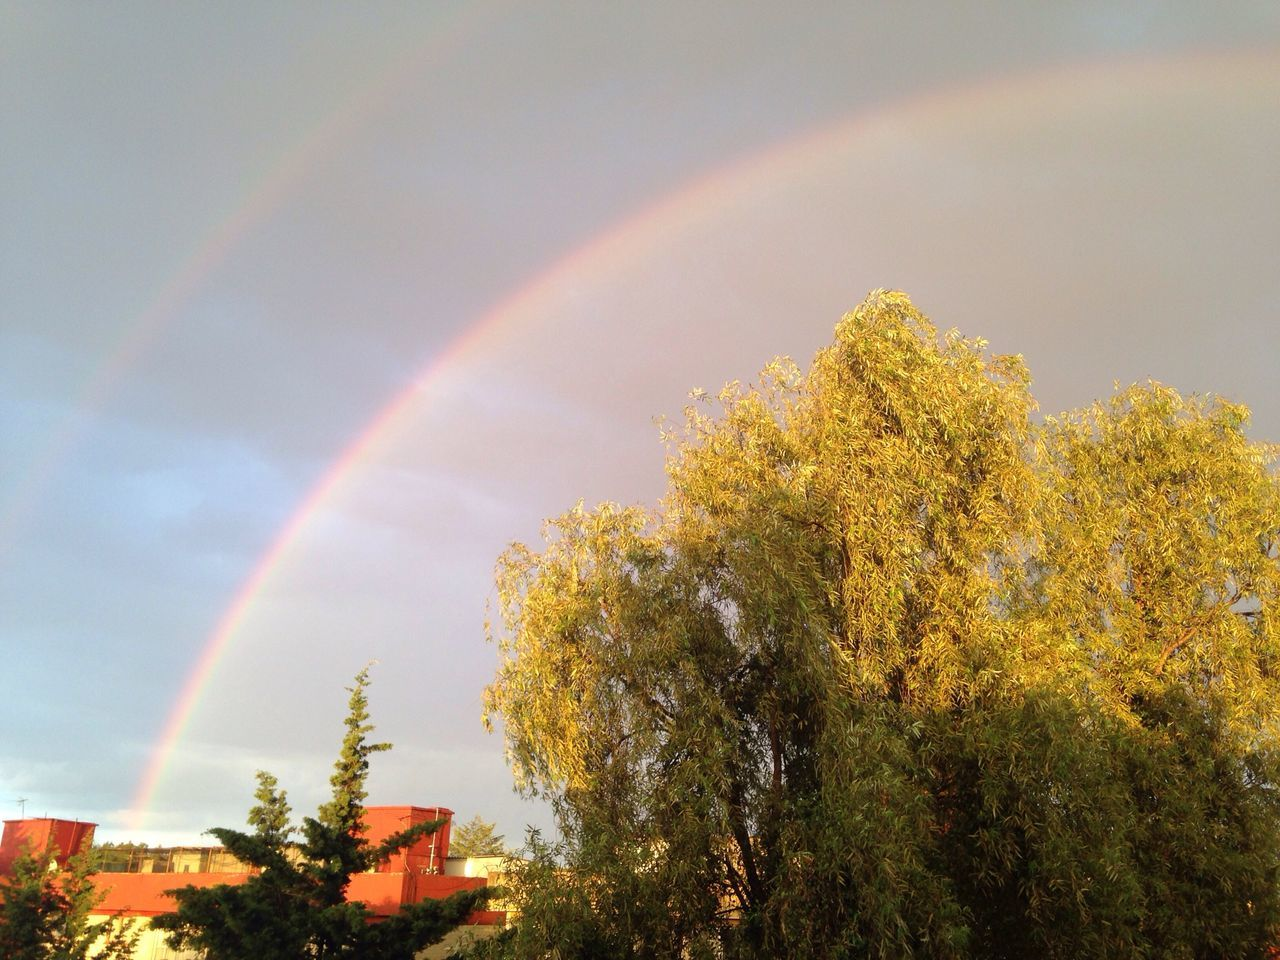 rainbow, tree, double rainbow, nature, beauty in nature, autumn, no people, multi colored, scenics, outdoors, sky, day